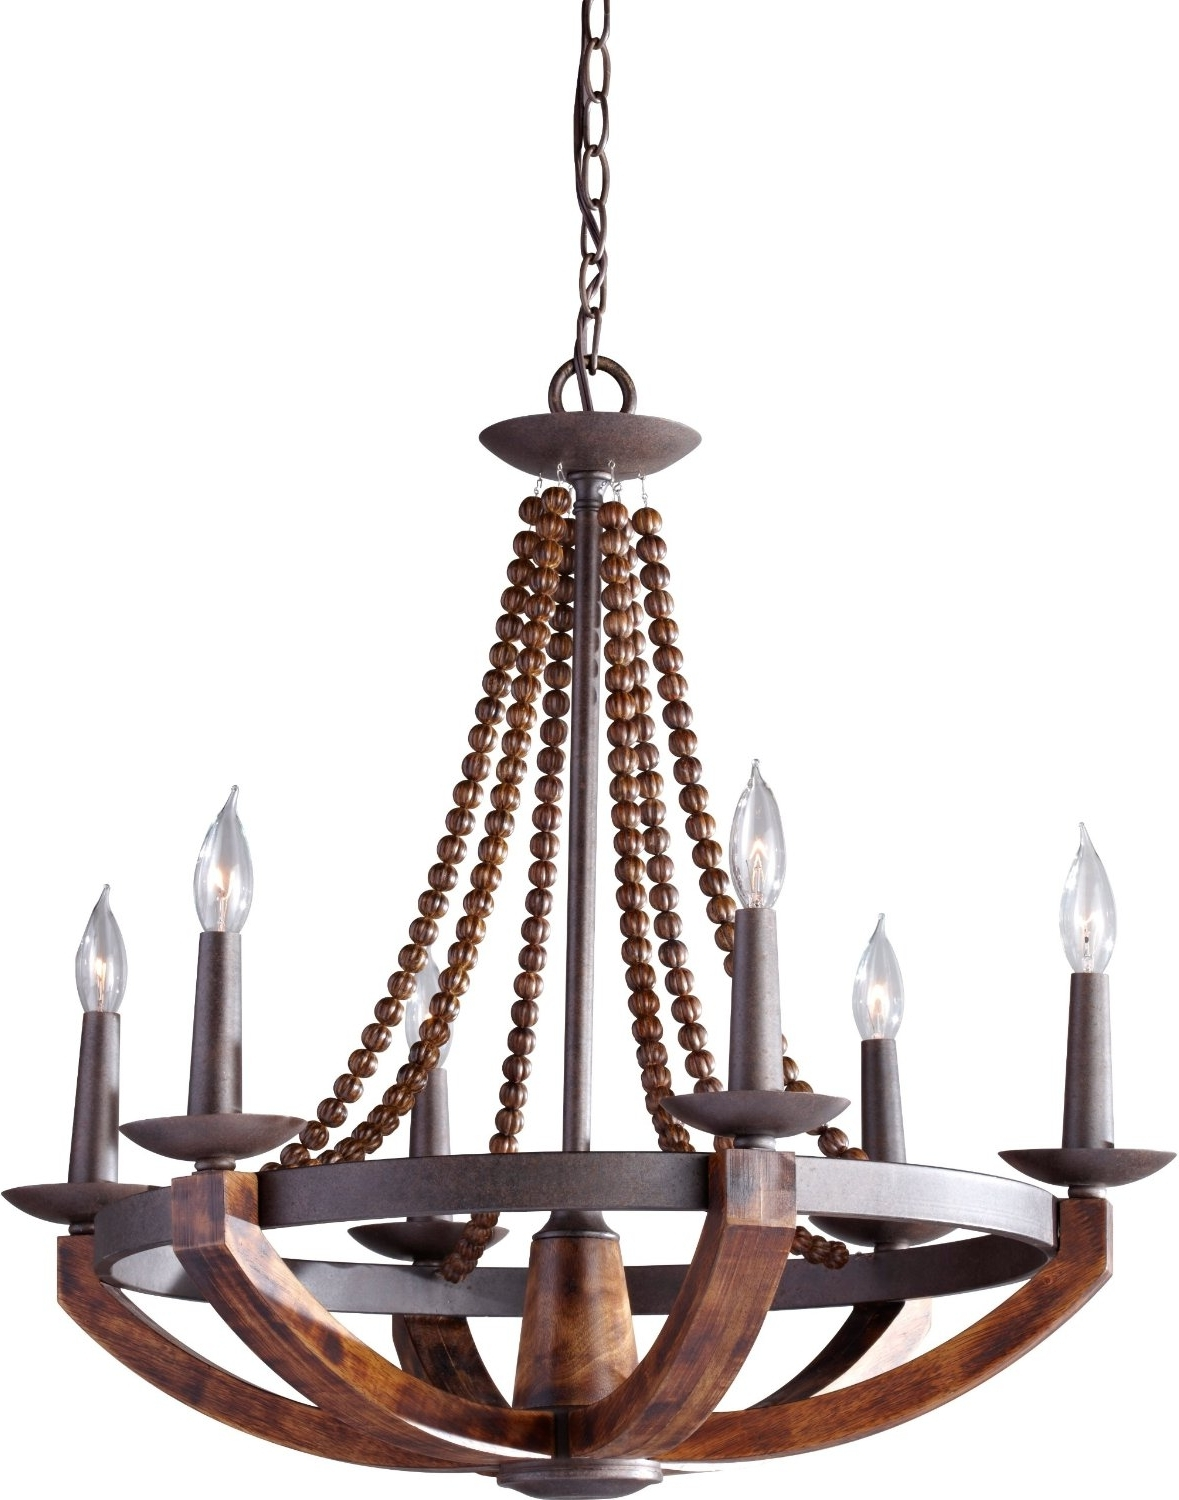 Best And Newest 12 Best Rustic Wood And Metal Chandeliers (View 6 of 20)